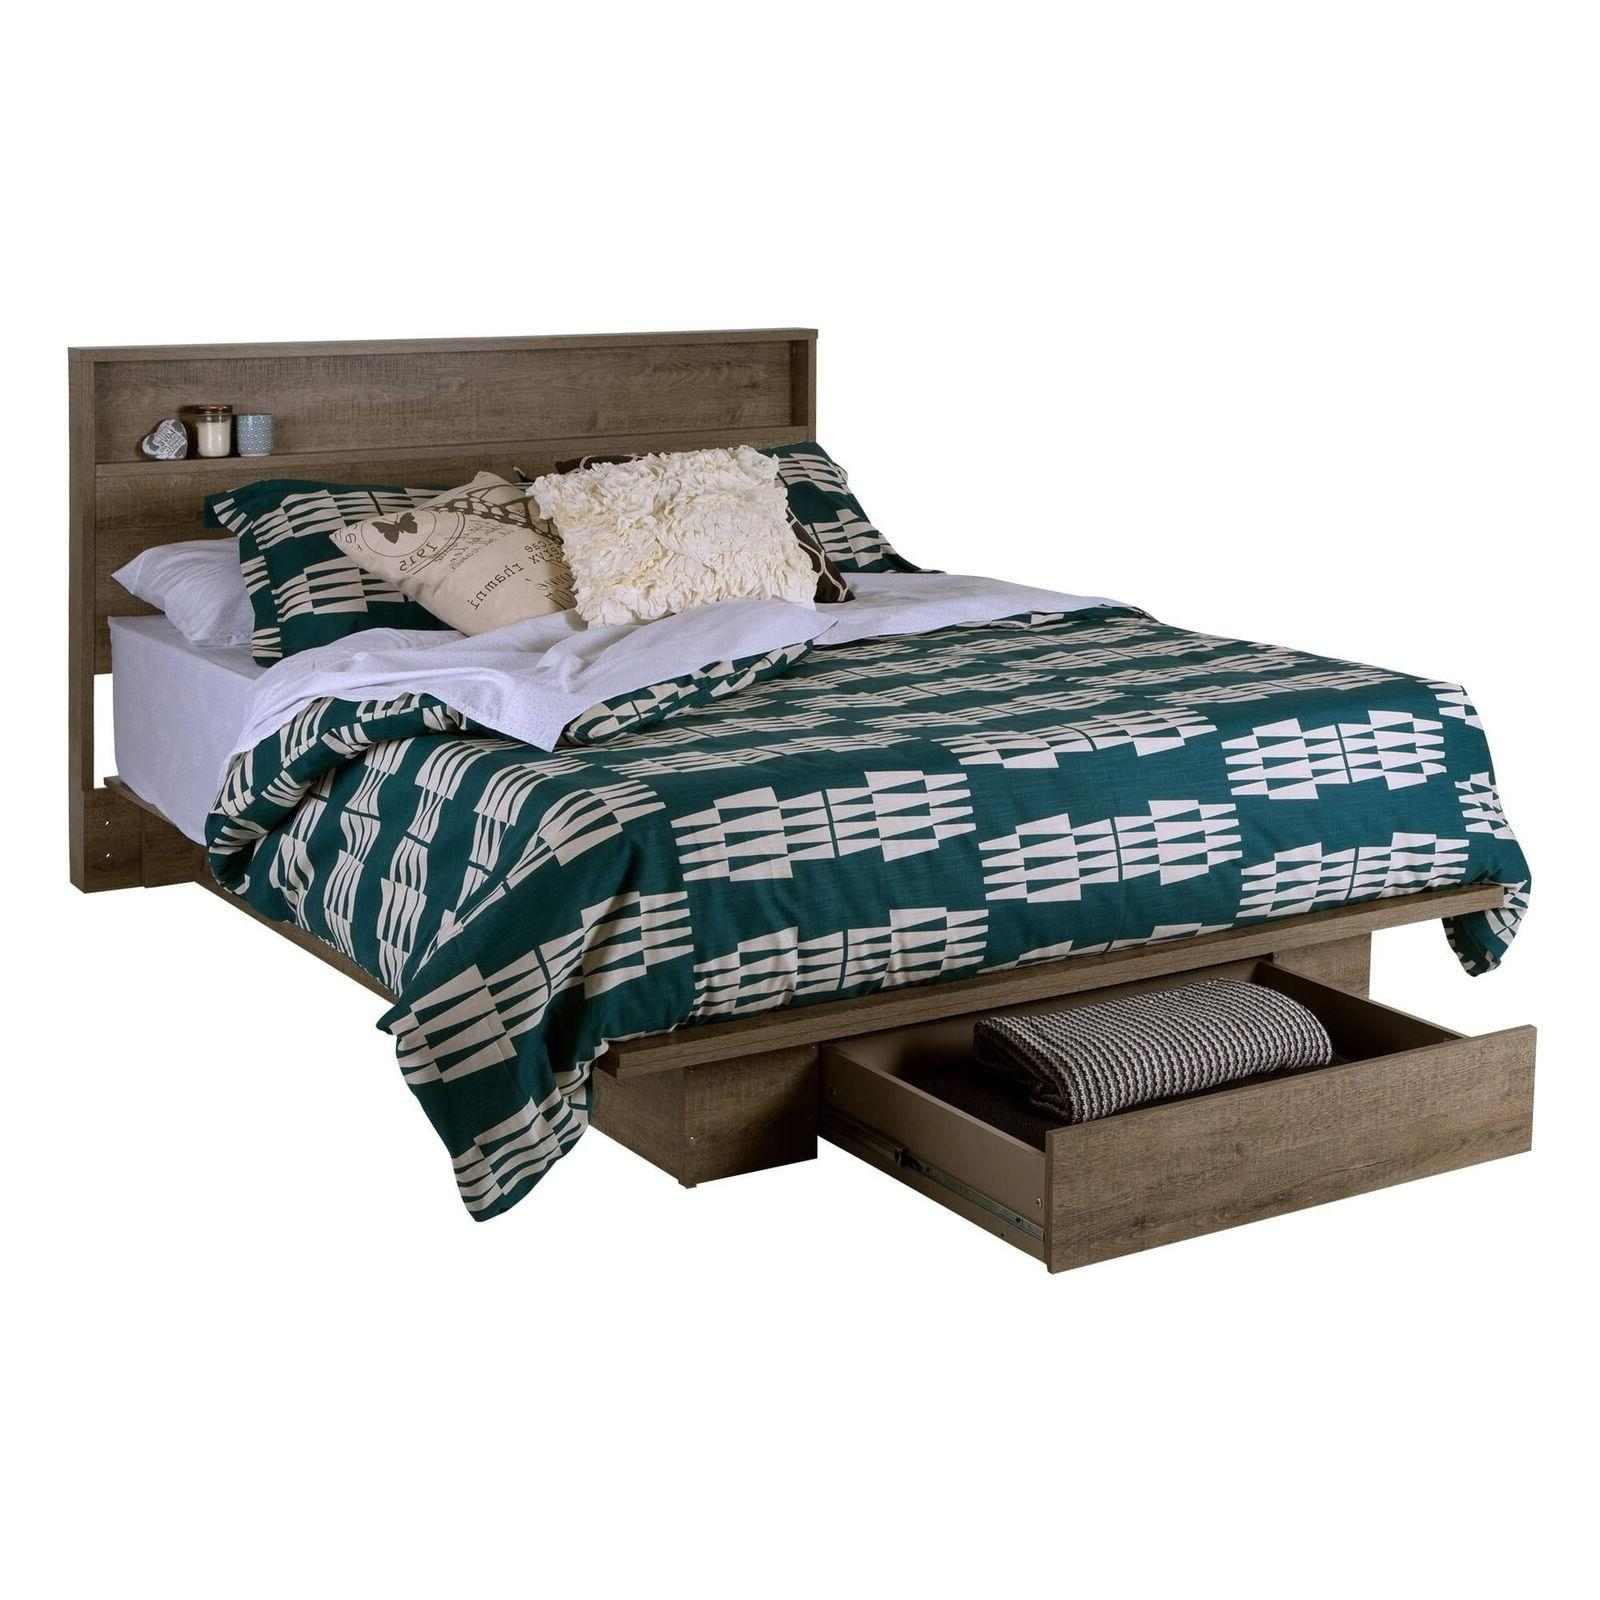 One Bed Furniture